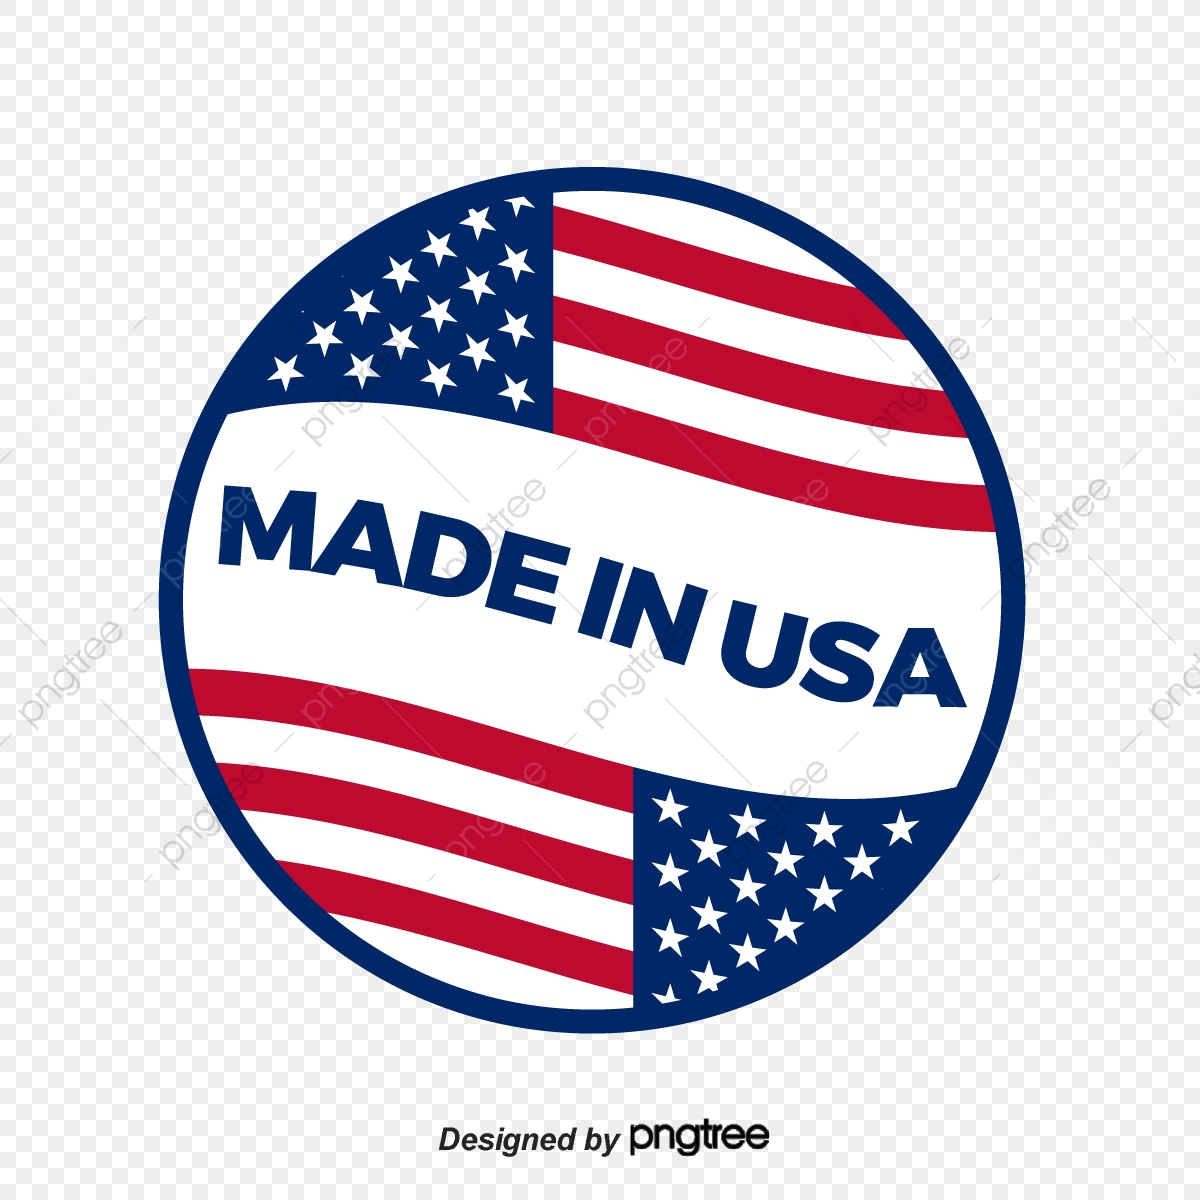 Design Of Made In Usa Trademark Made In Usa With Circular.